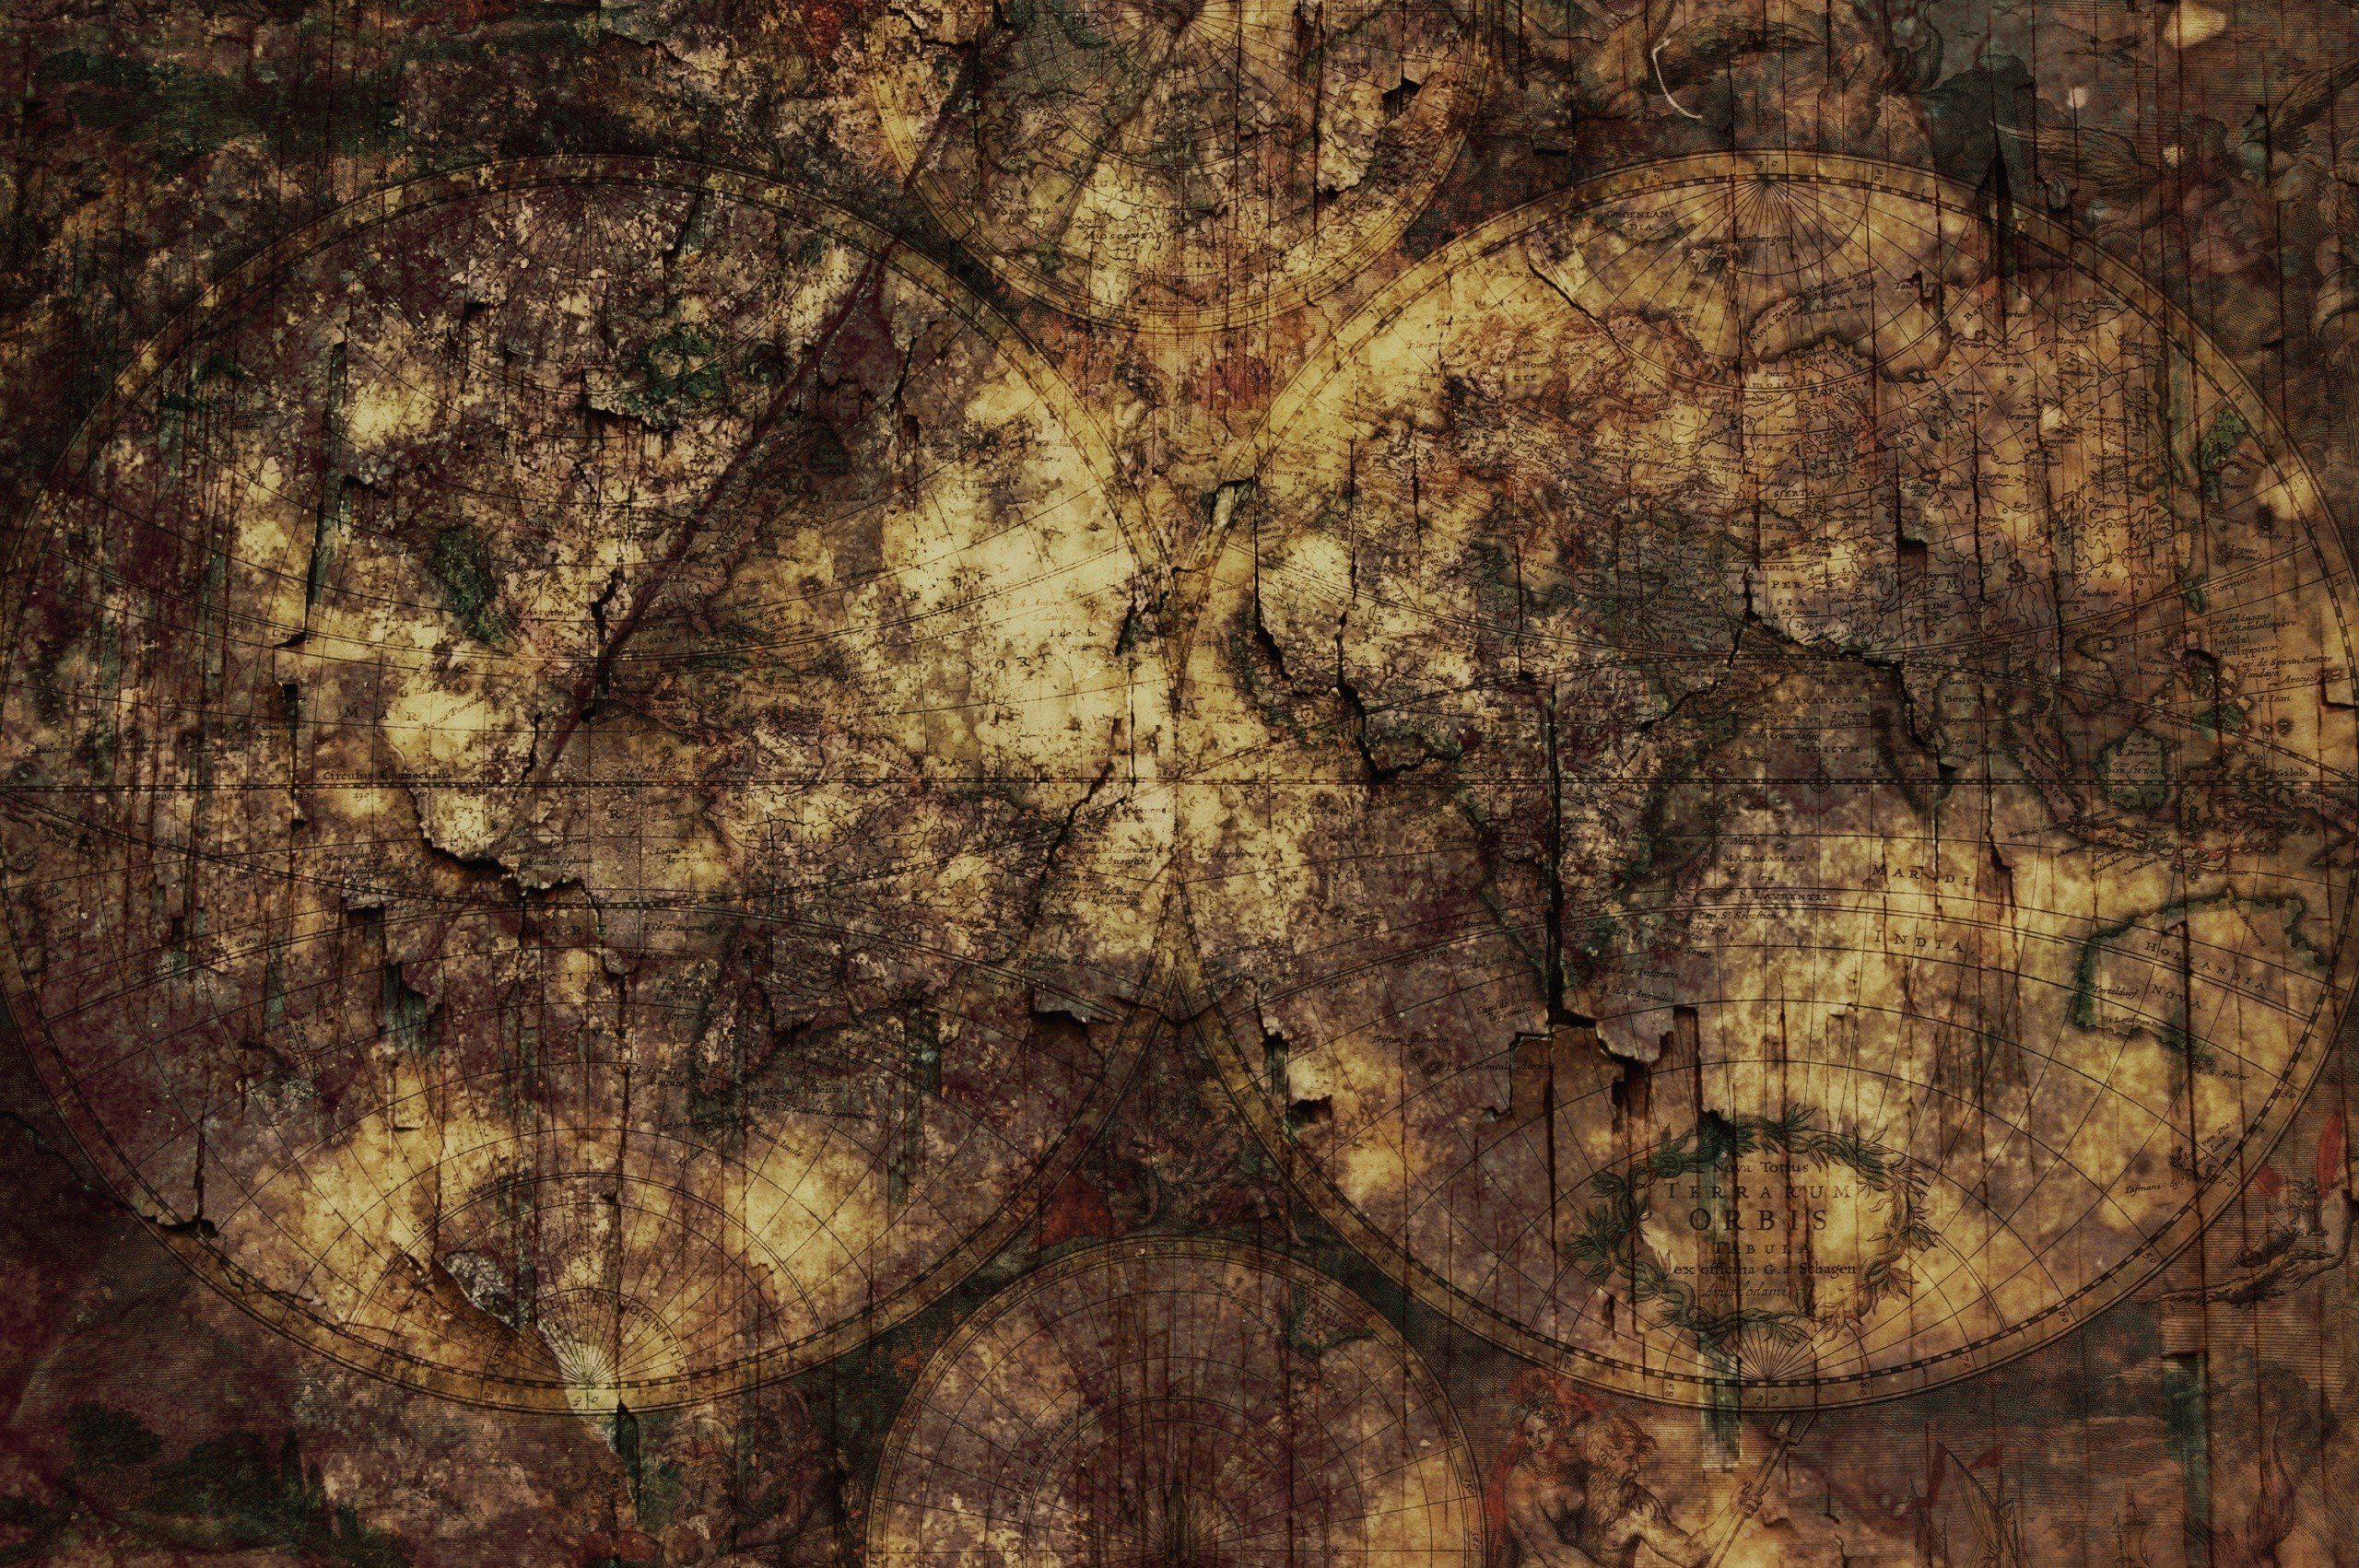 Old world map wallpaper wallpapersafari old wallpaper previous wallpaper 23 anglerz gumiabroncs Image collections